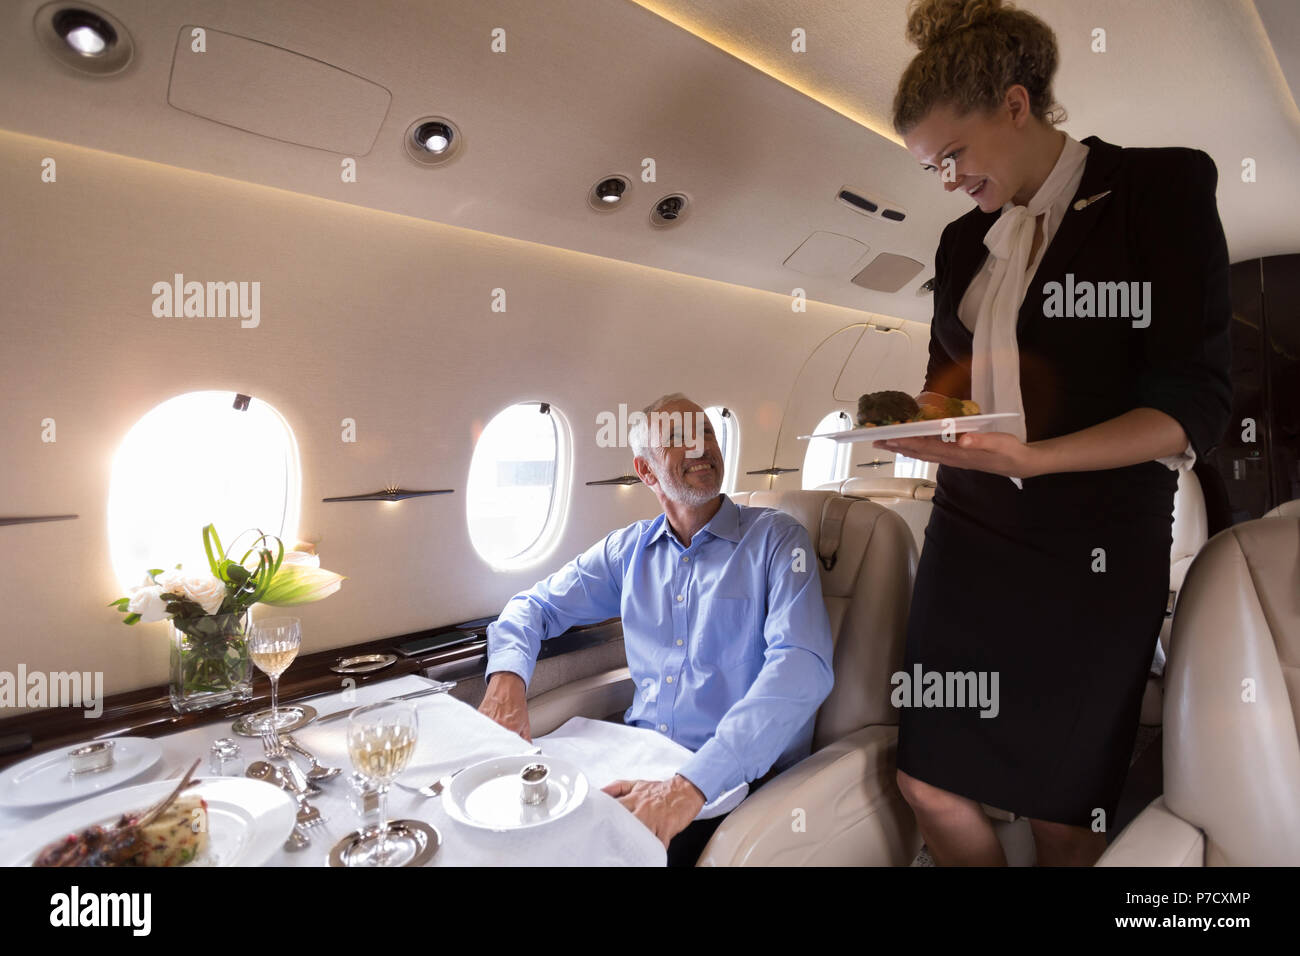 Flight attendant serving meal to businessman - Stock Image